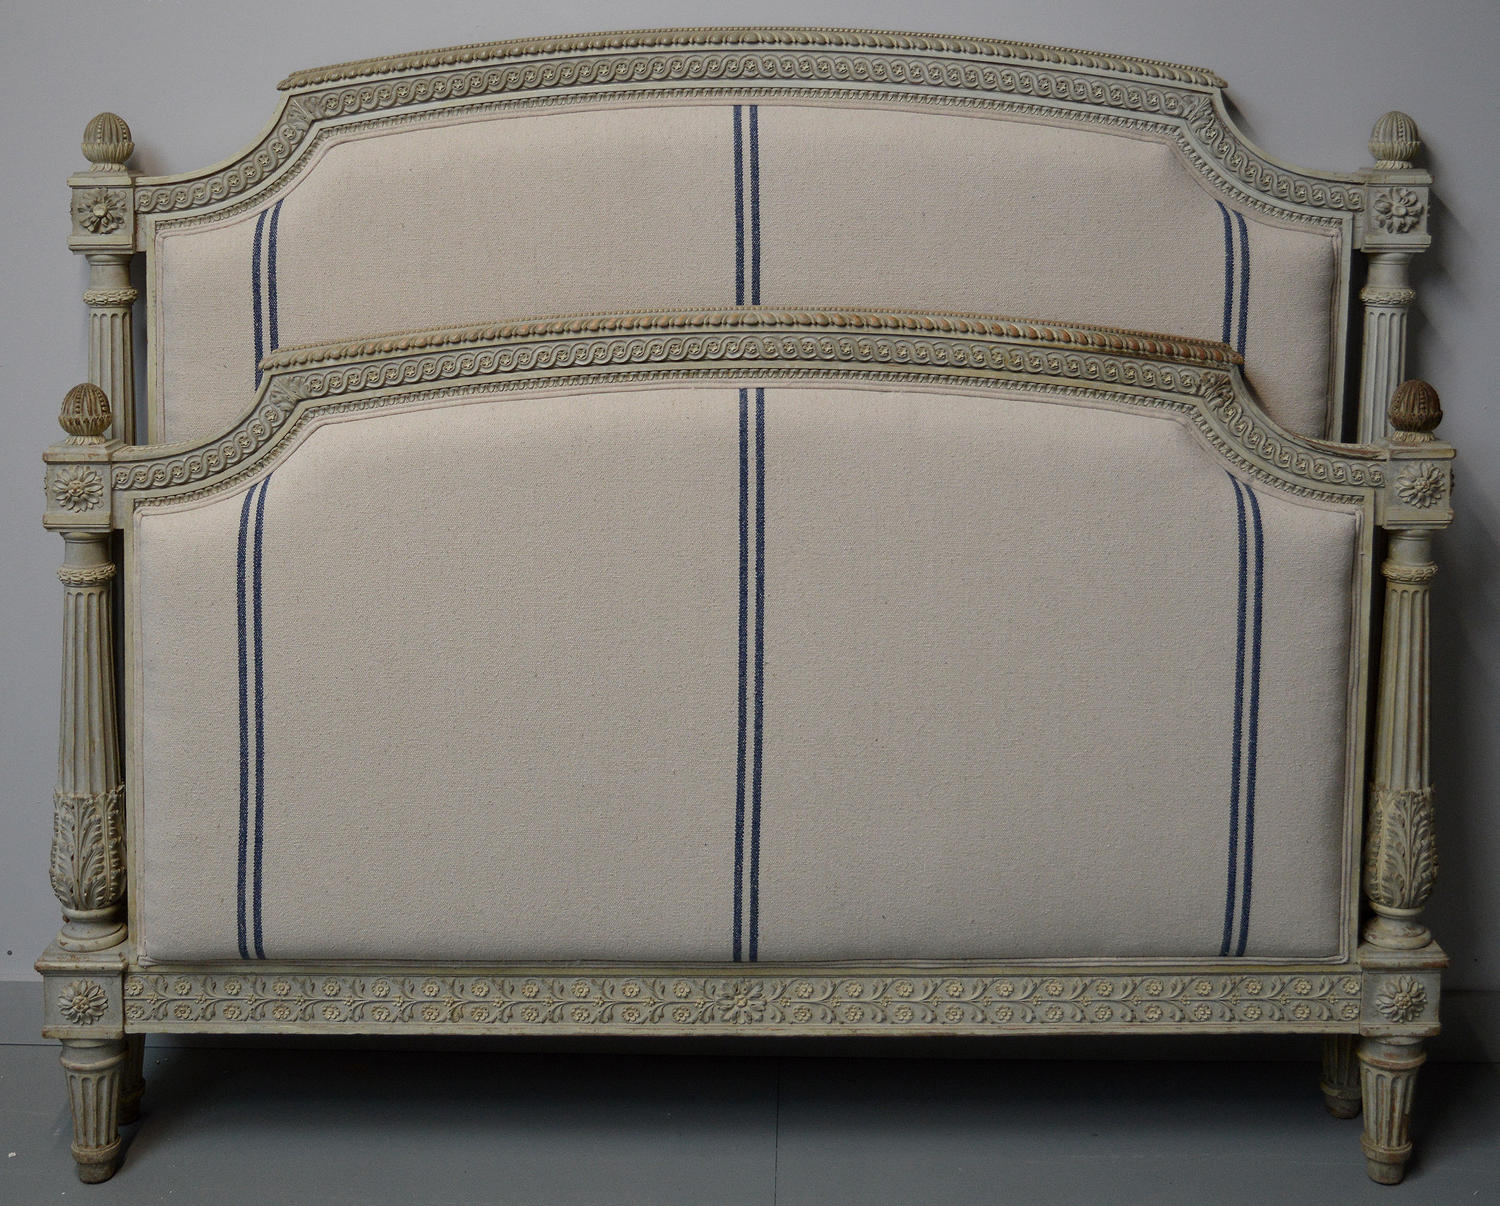 19thC Louis XVI style bedstead